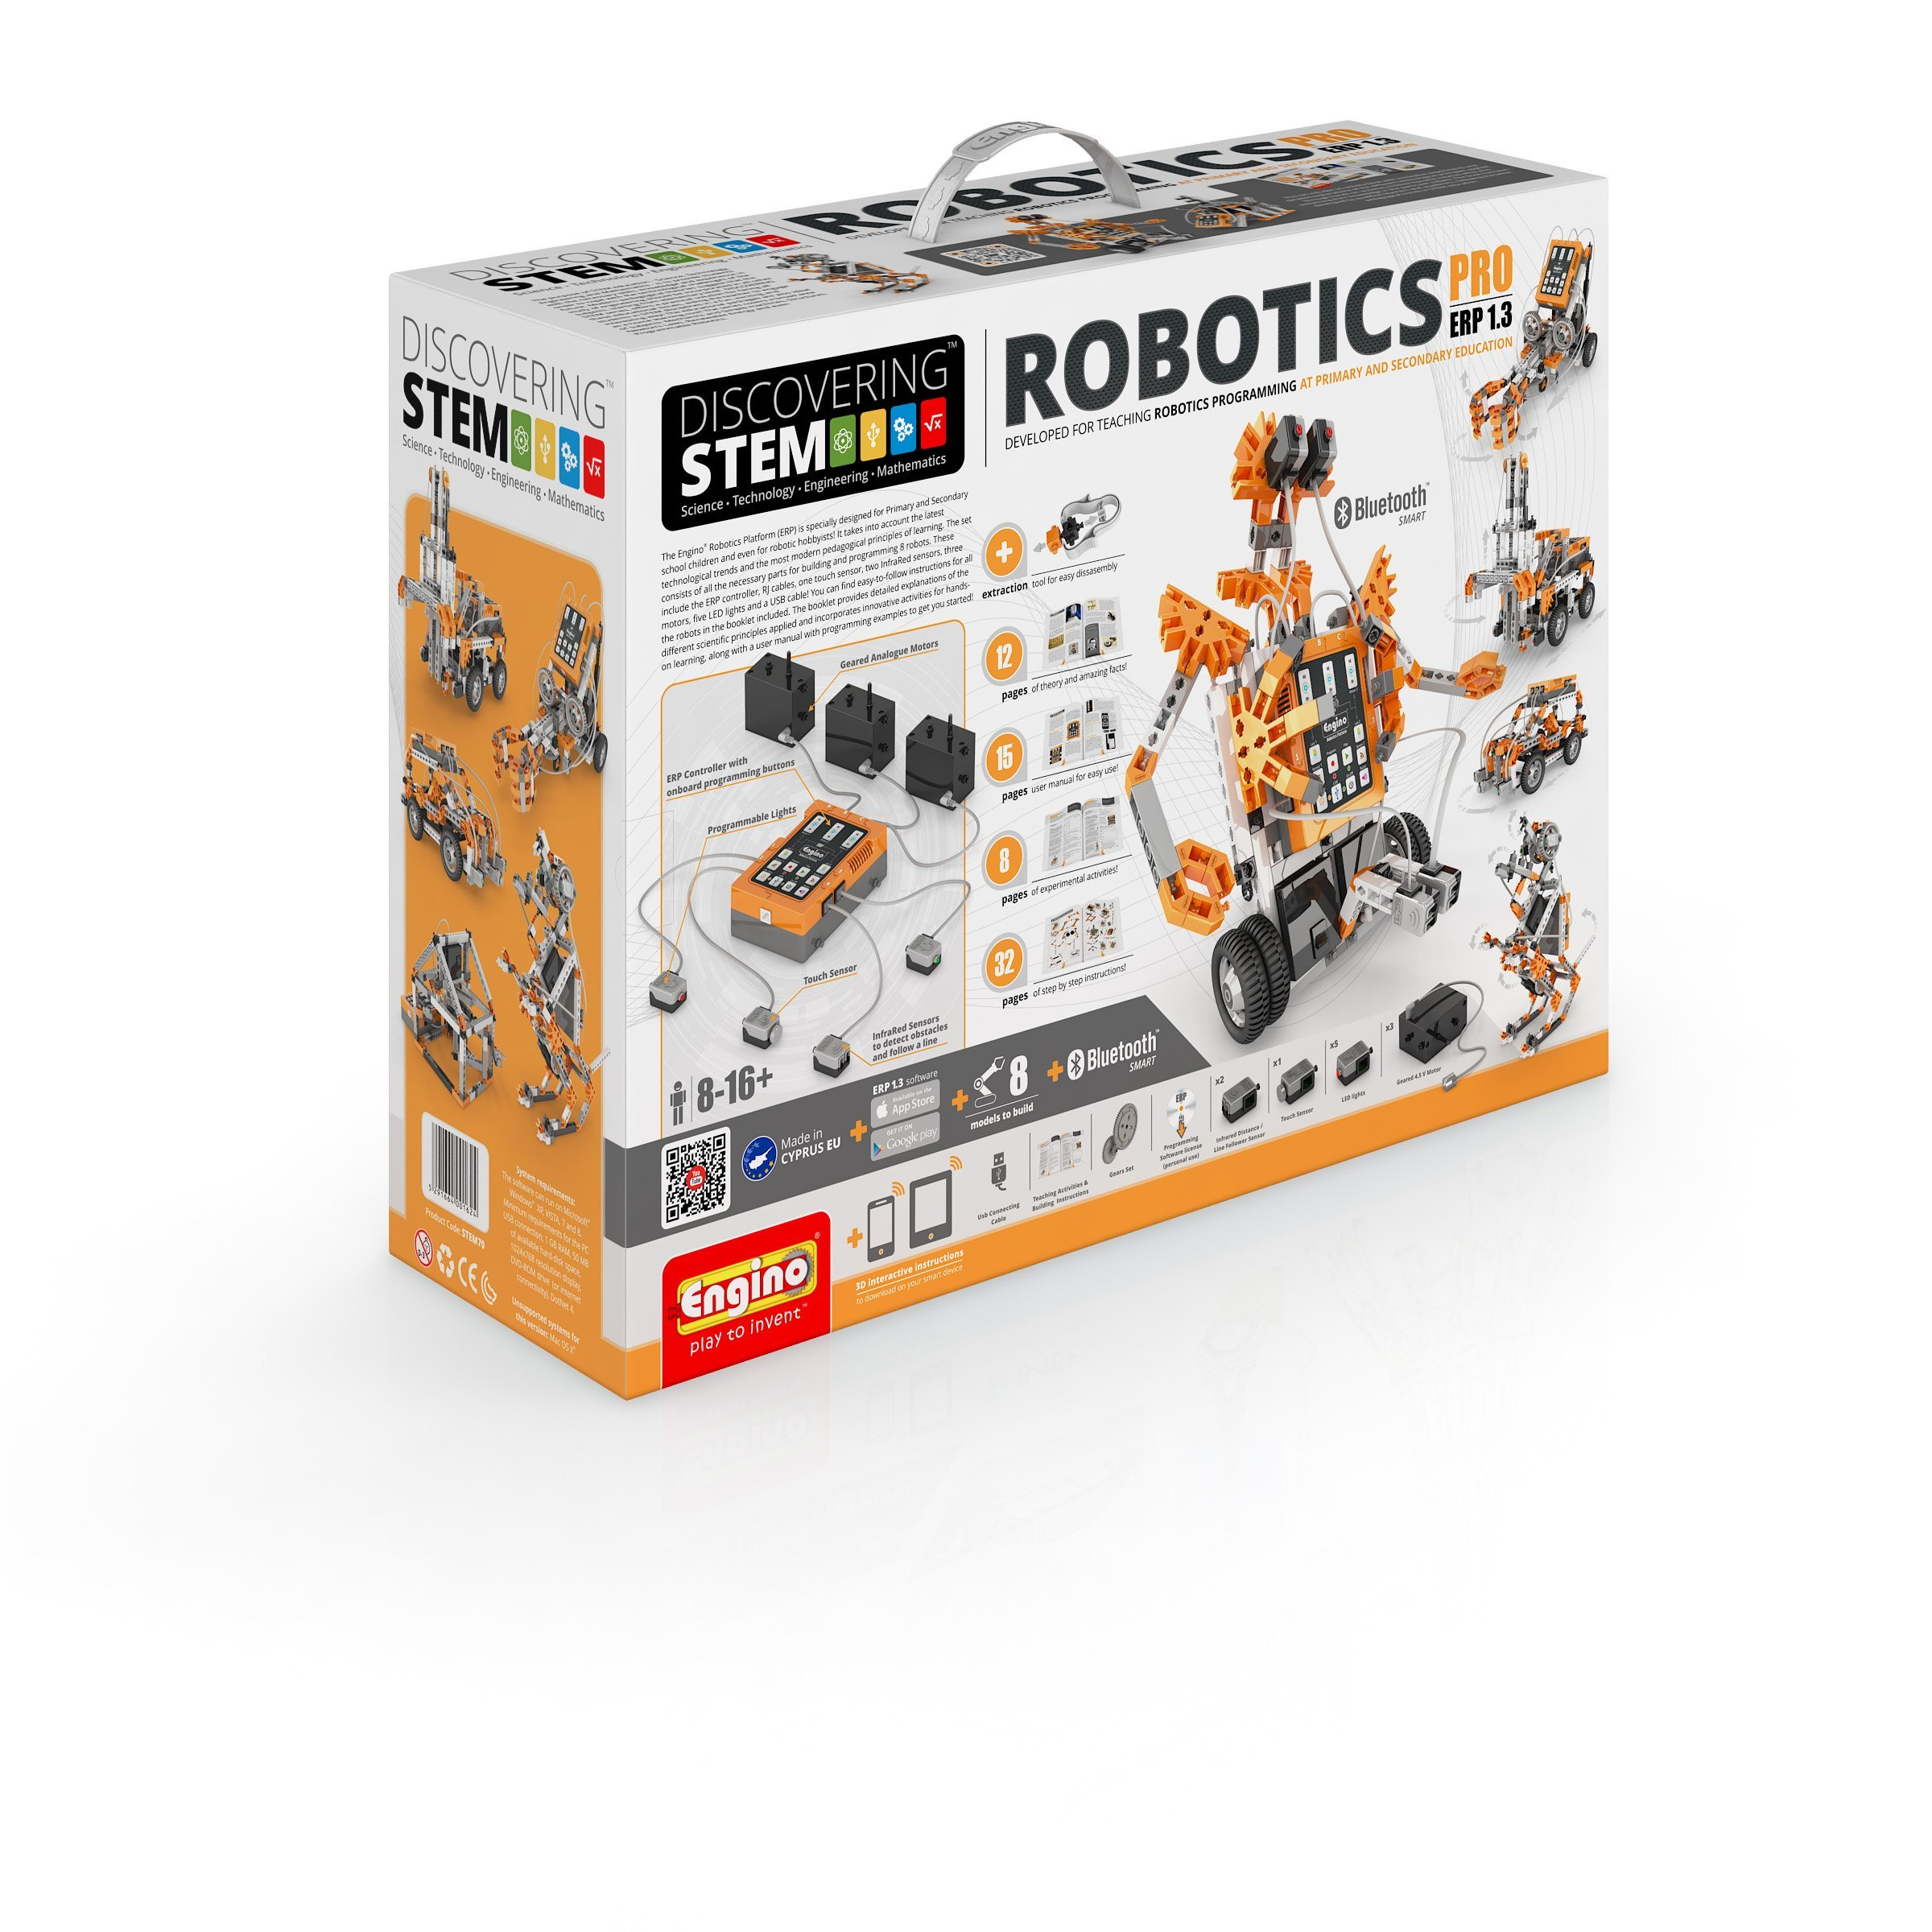 Engino DISCOVERING STEM. ROBOTICS ERP PRO EDITION with BT STEM70